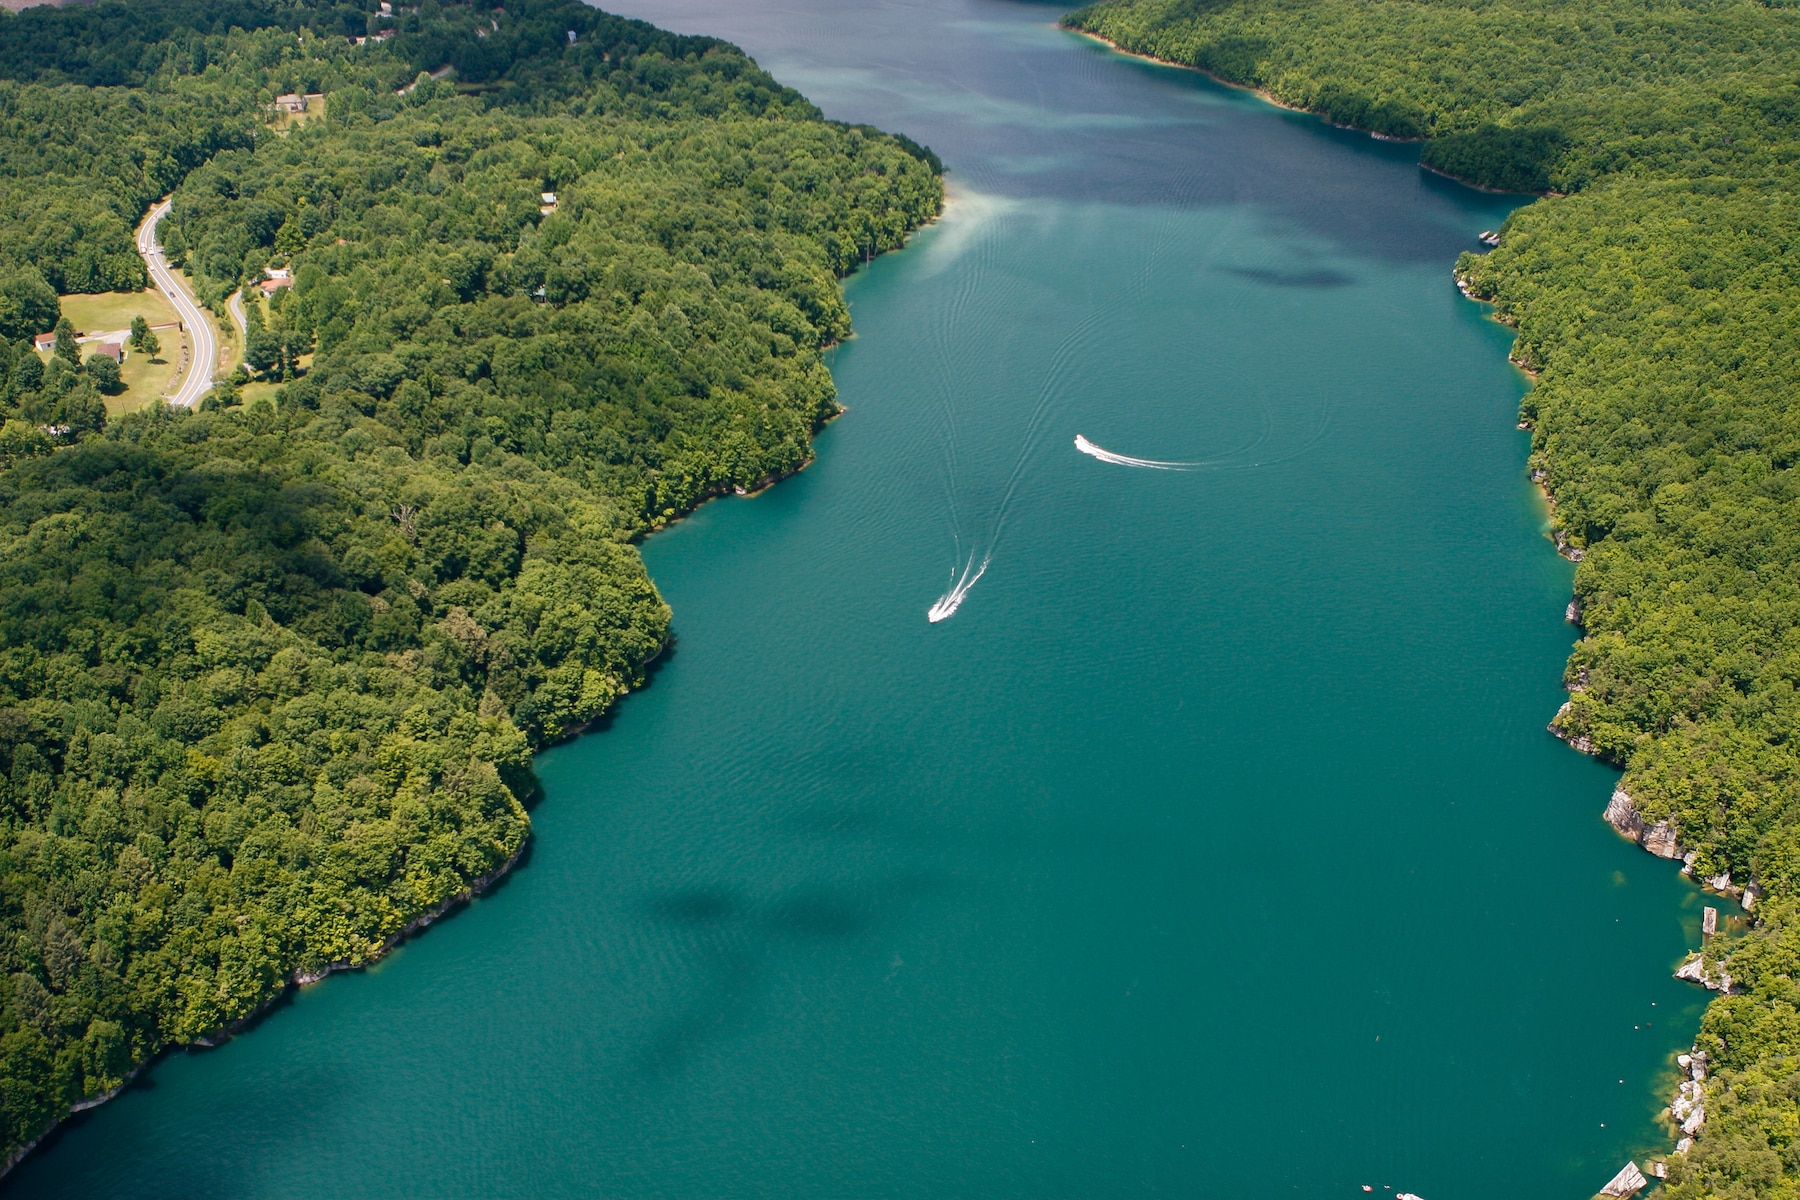 Aerial shot of Summersville Lake in West Virginia. Boating and recreation.